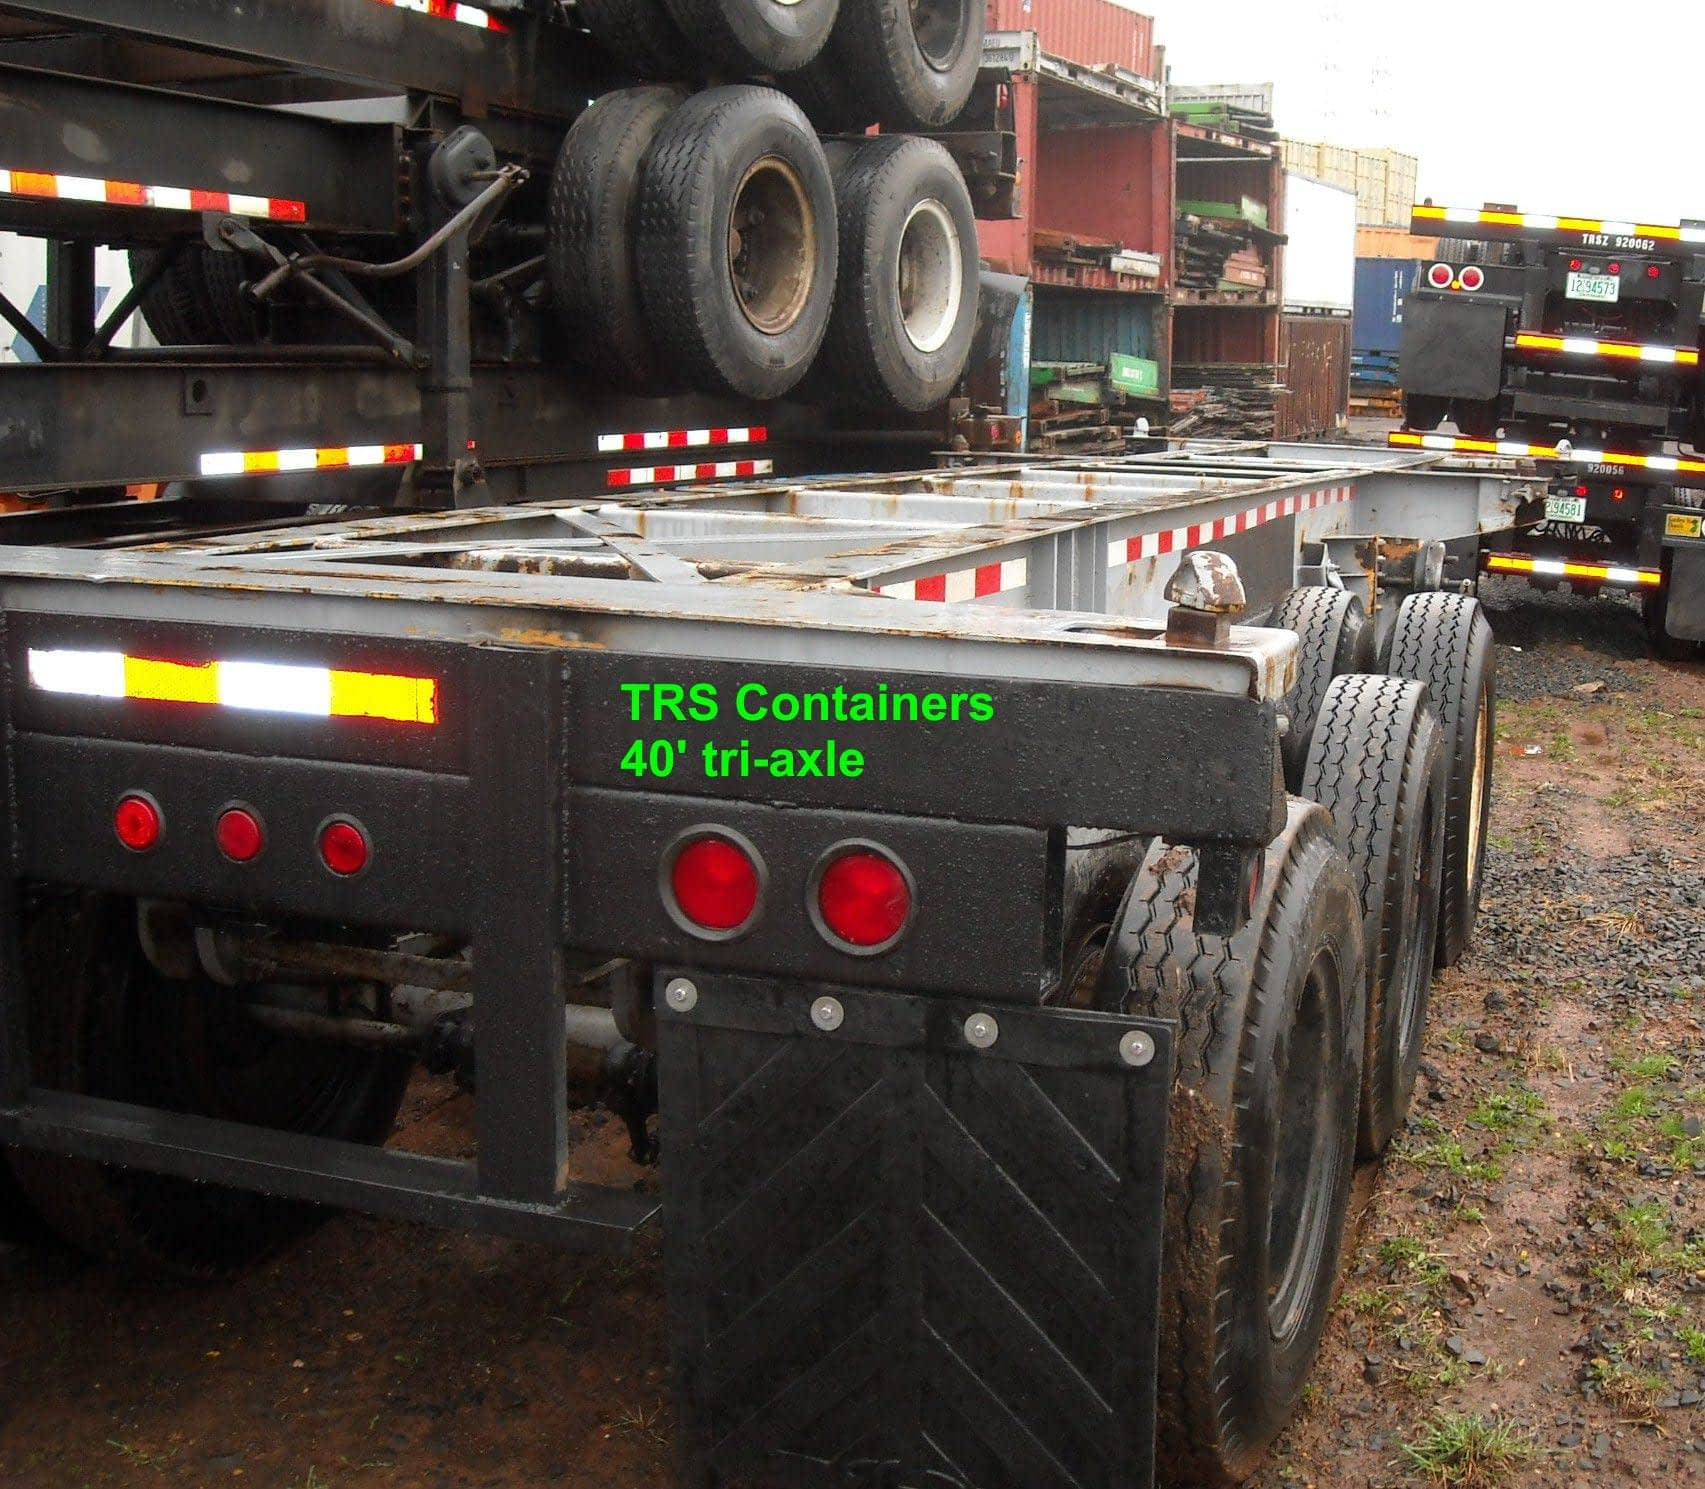 TRS Containers sells rents repairs regsiters stacks and trucks 40 foot tri-axle chassis